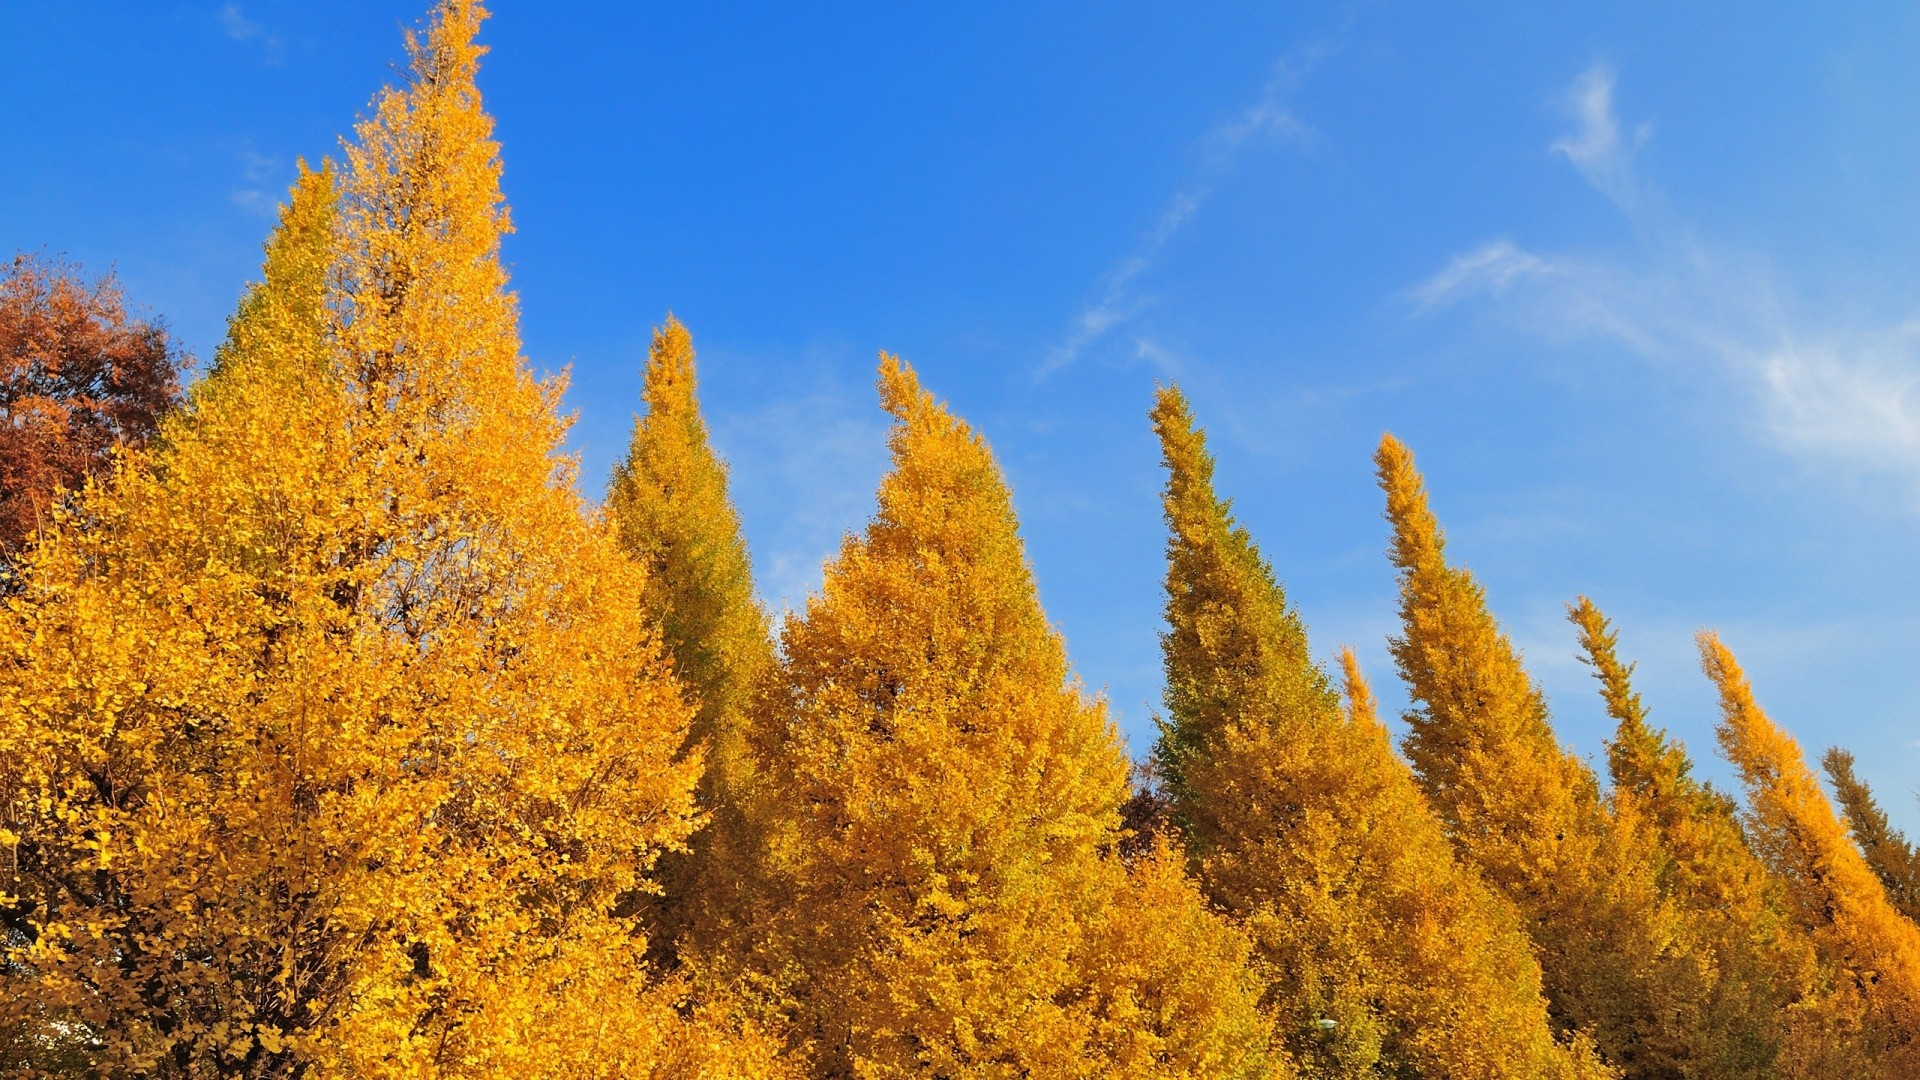 1920x1080 ... Background Full HD 1080p.  Wallpaper trees, autumn, sky, leaves